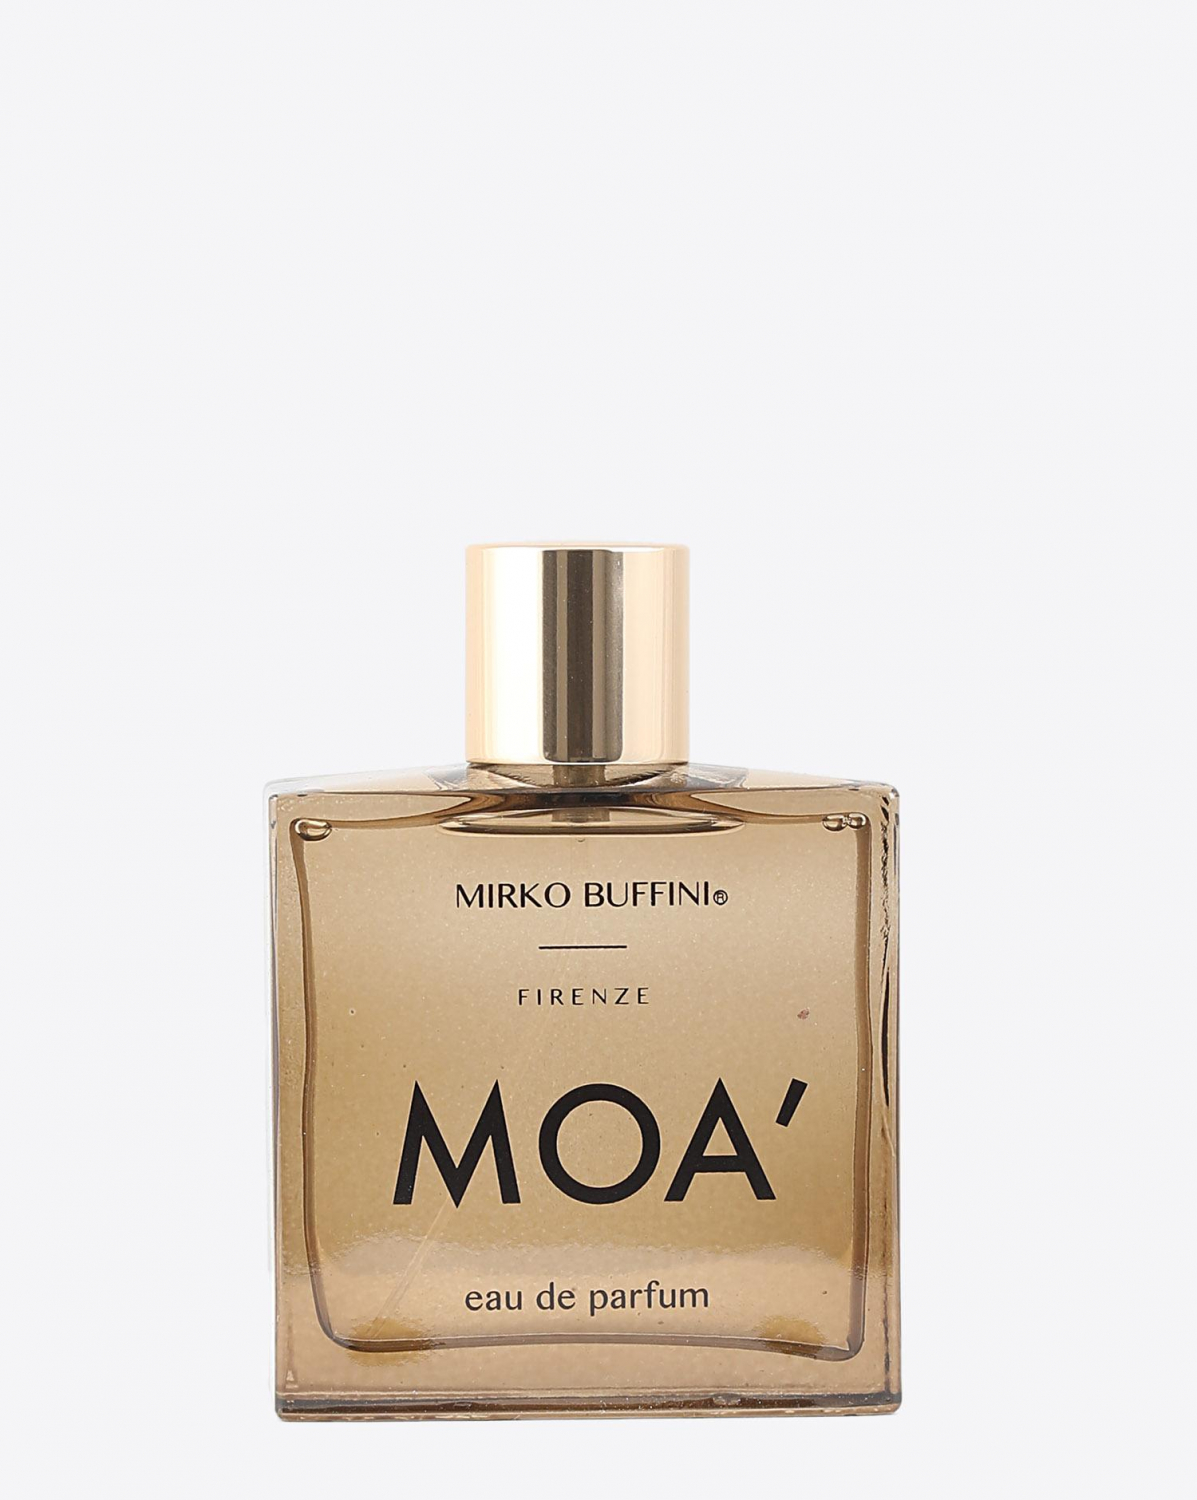 Mirko Buffini Moa - 100mL